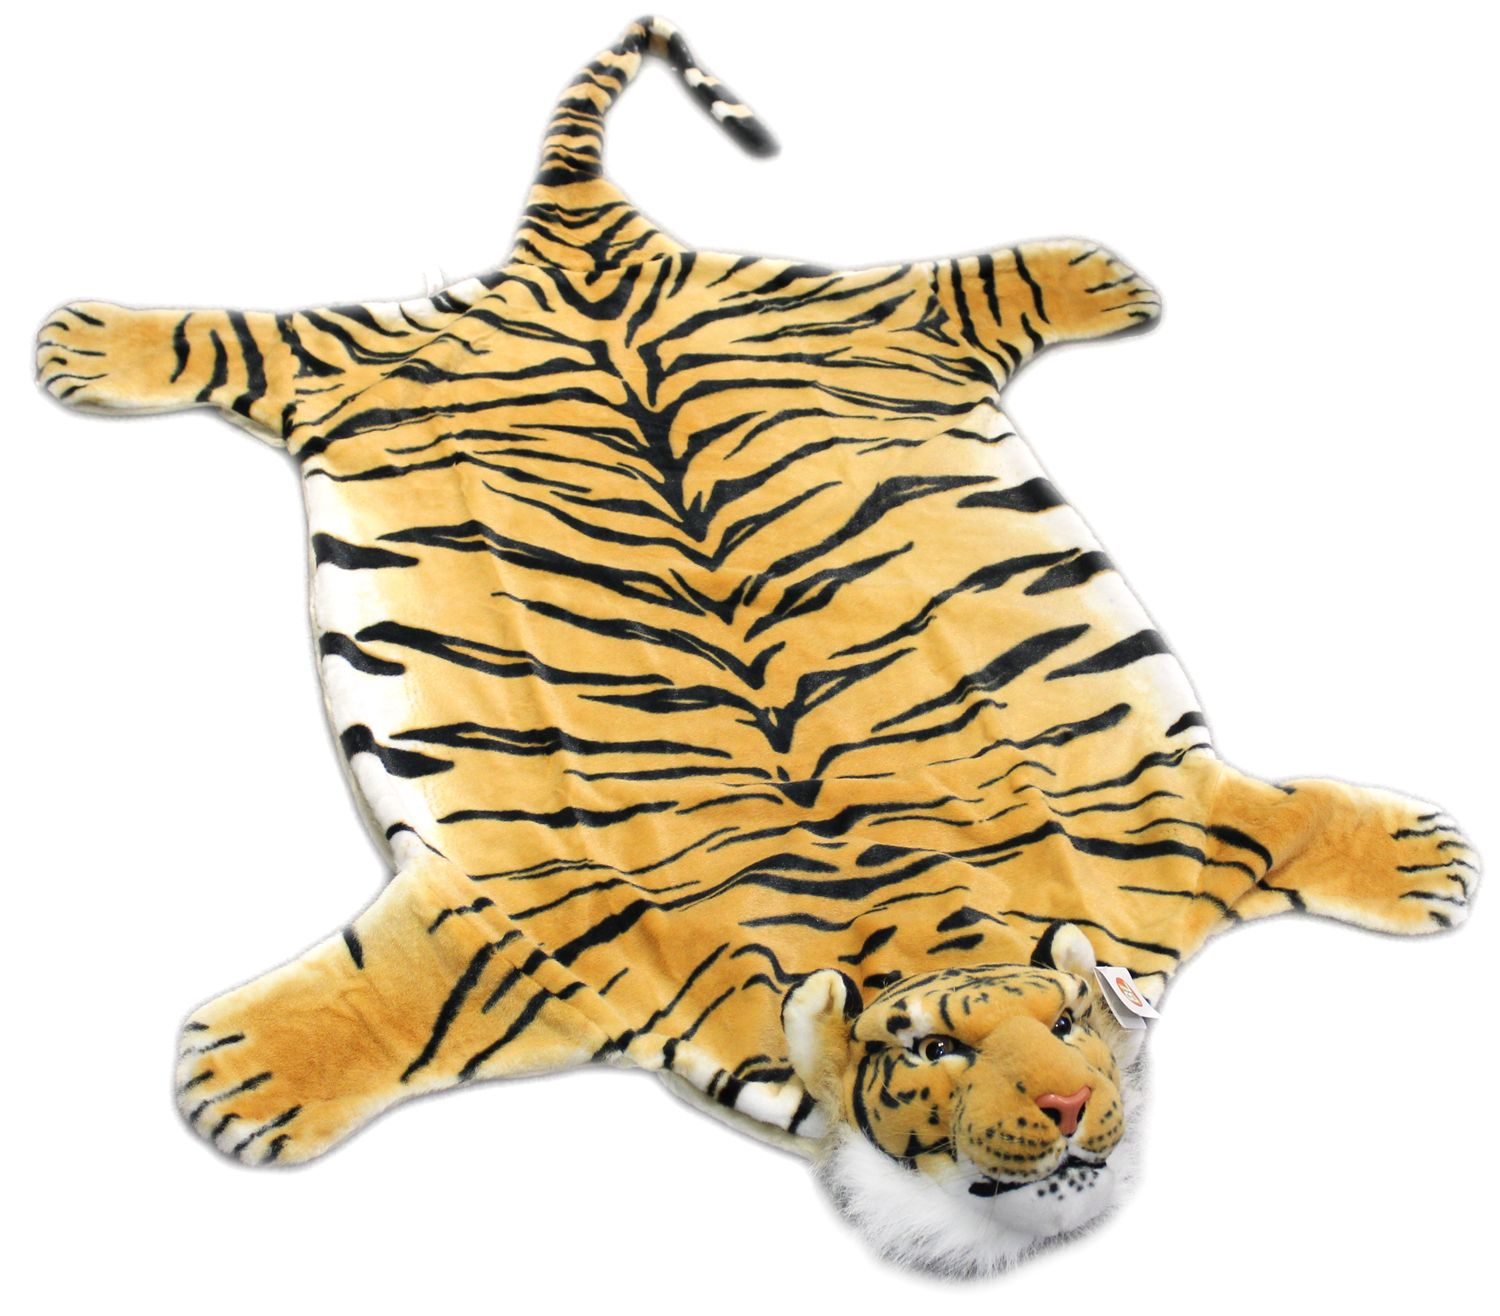 "Fake Fur ZEBRA plush skin zebraskin striped RUG KING LARGE SIZE 88,5/"" 59/"" in new"